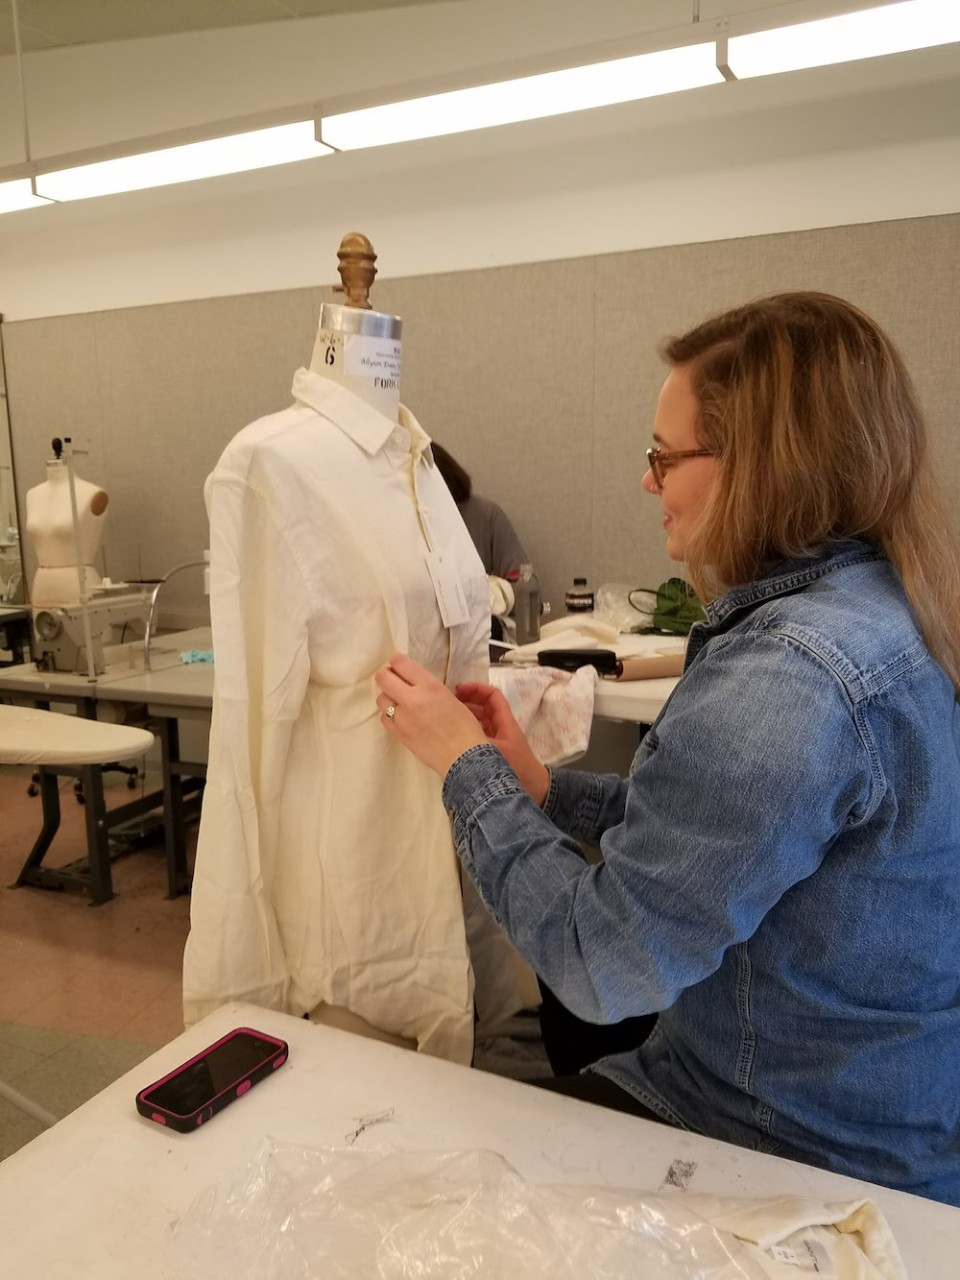 A student fits a garment made from two white button-up shirts on a dress form.